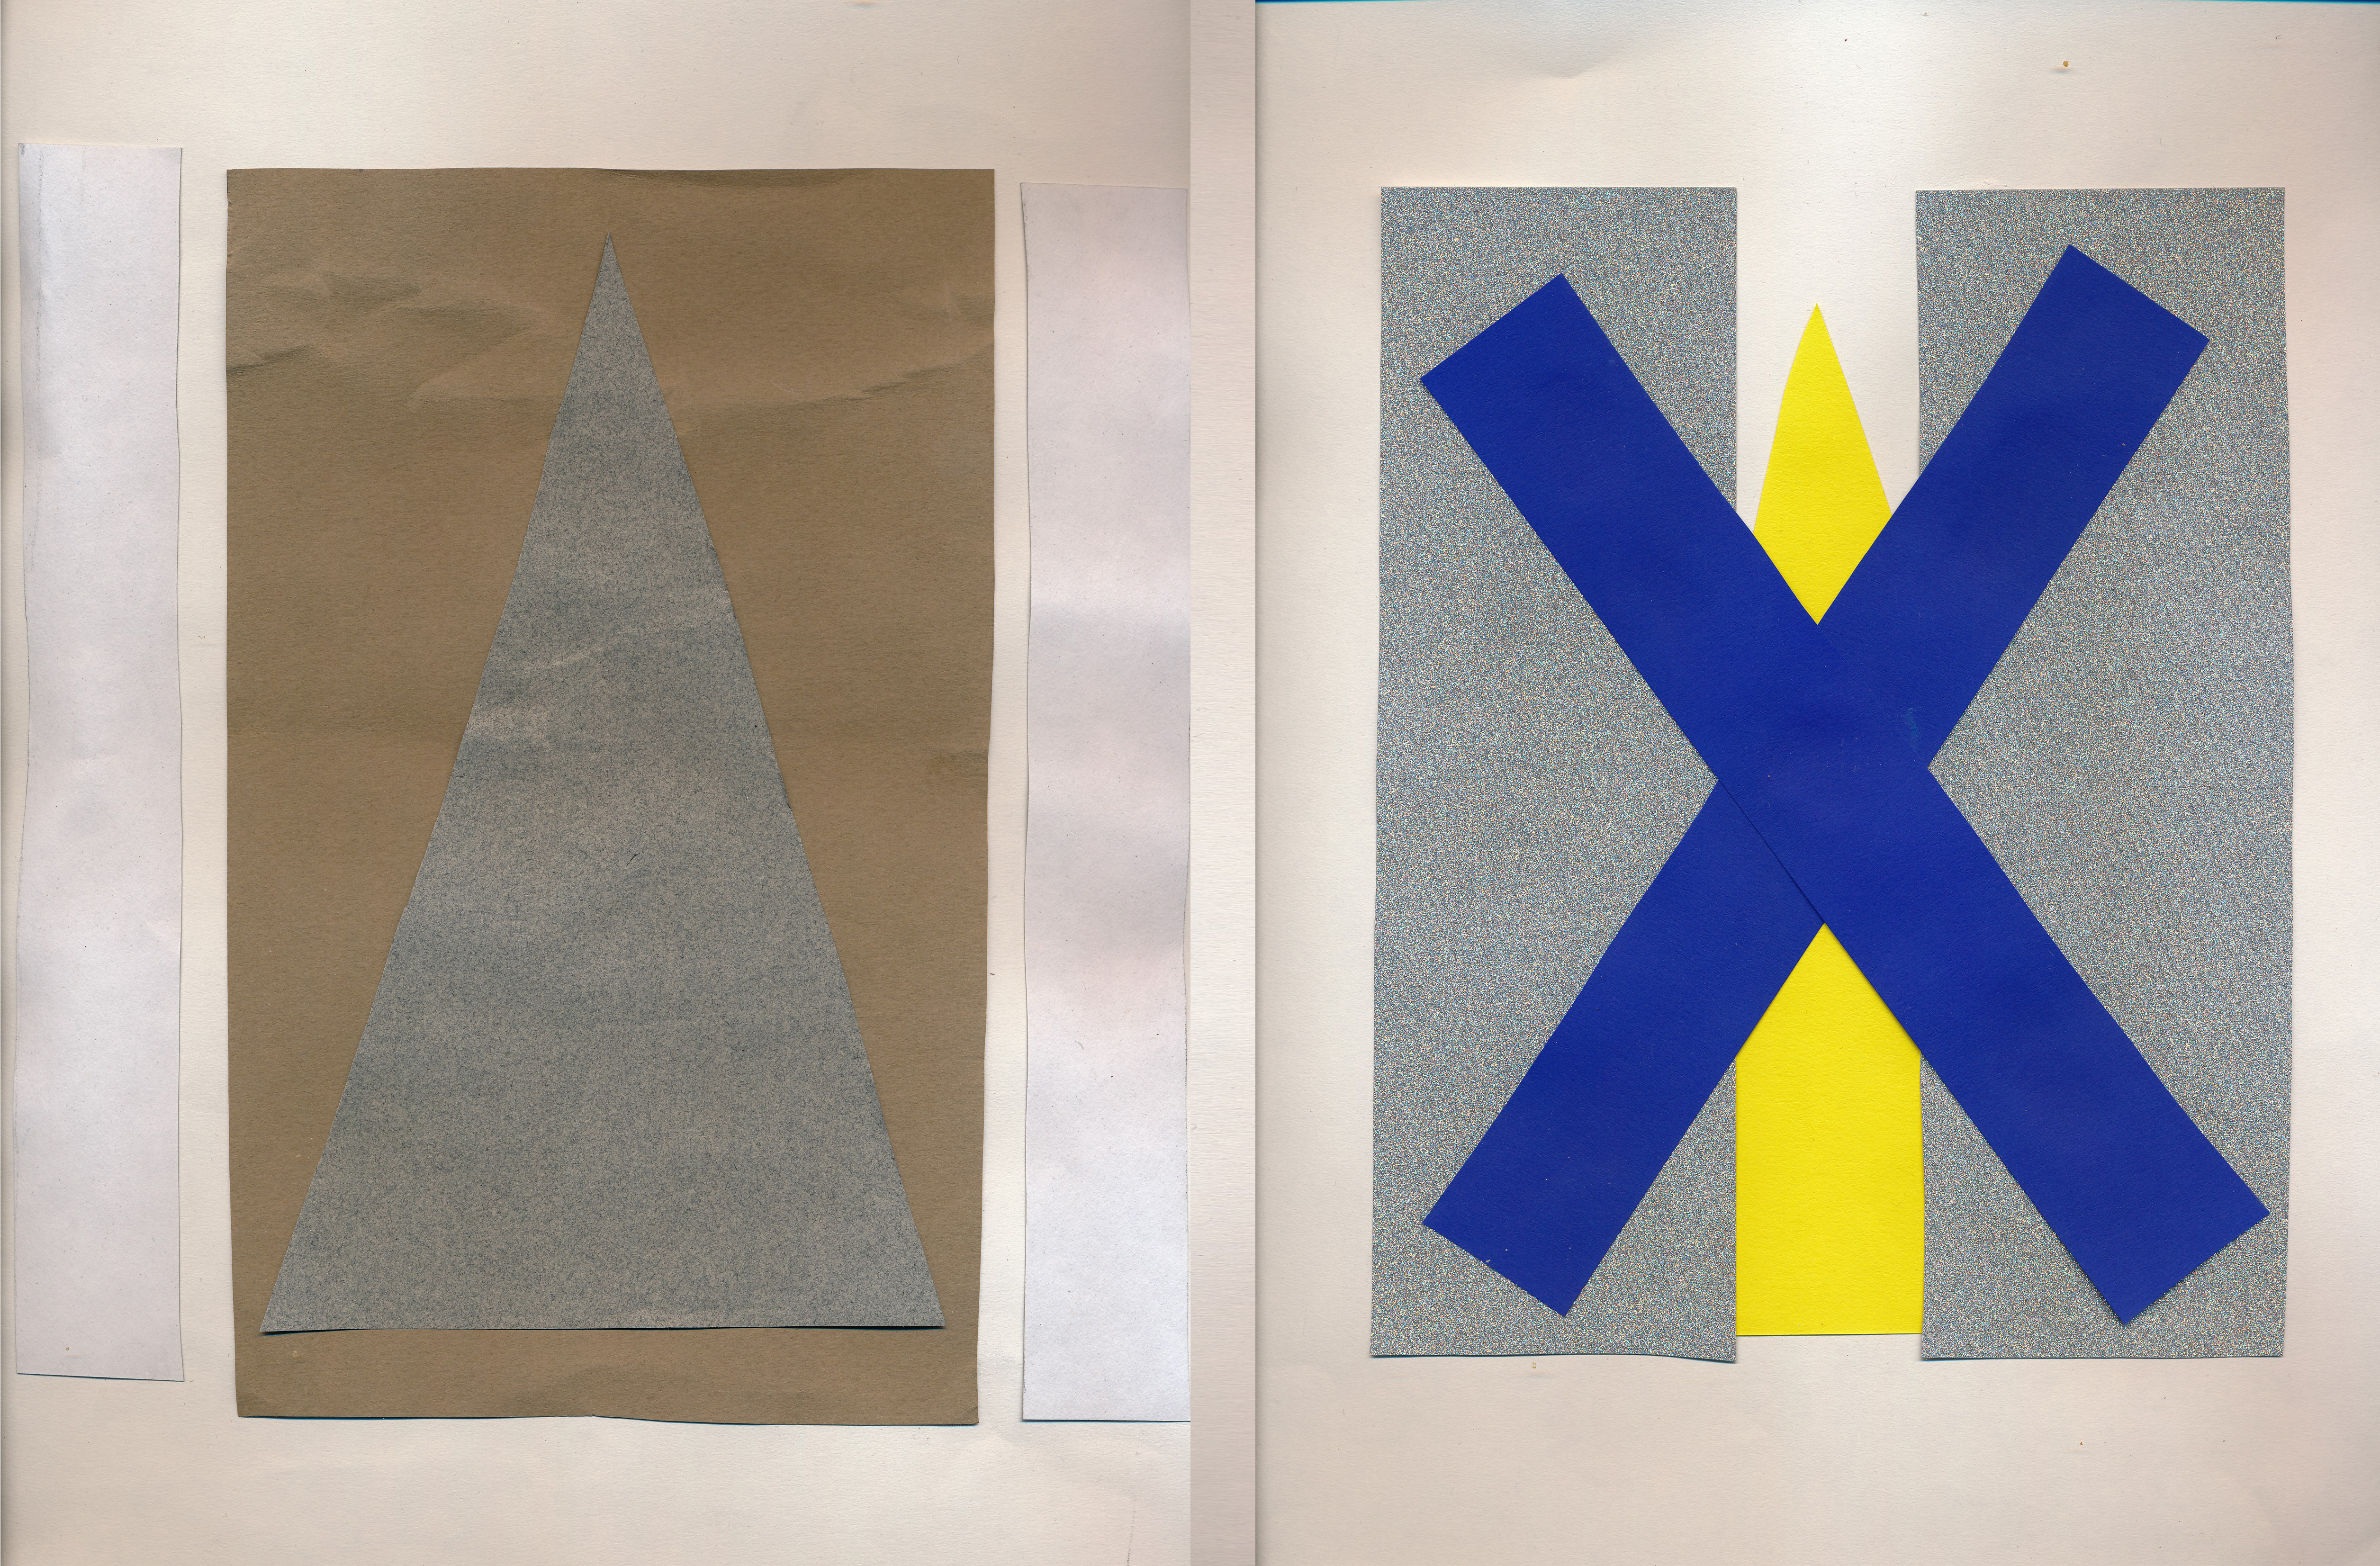 Drawing / Imaging – Language: Mark Making / Diptych / Process Statement